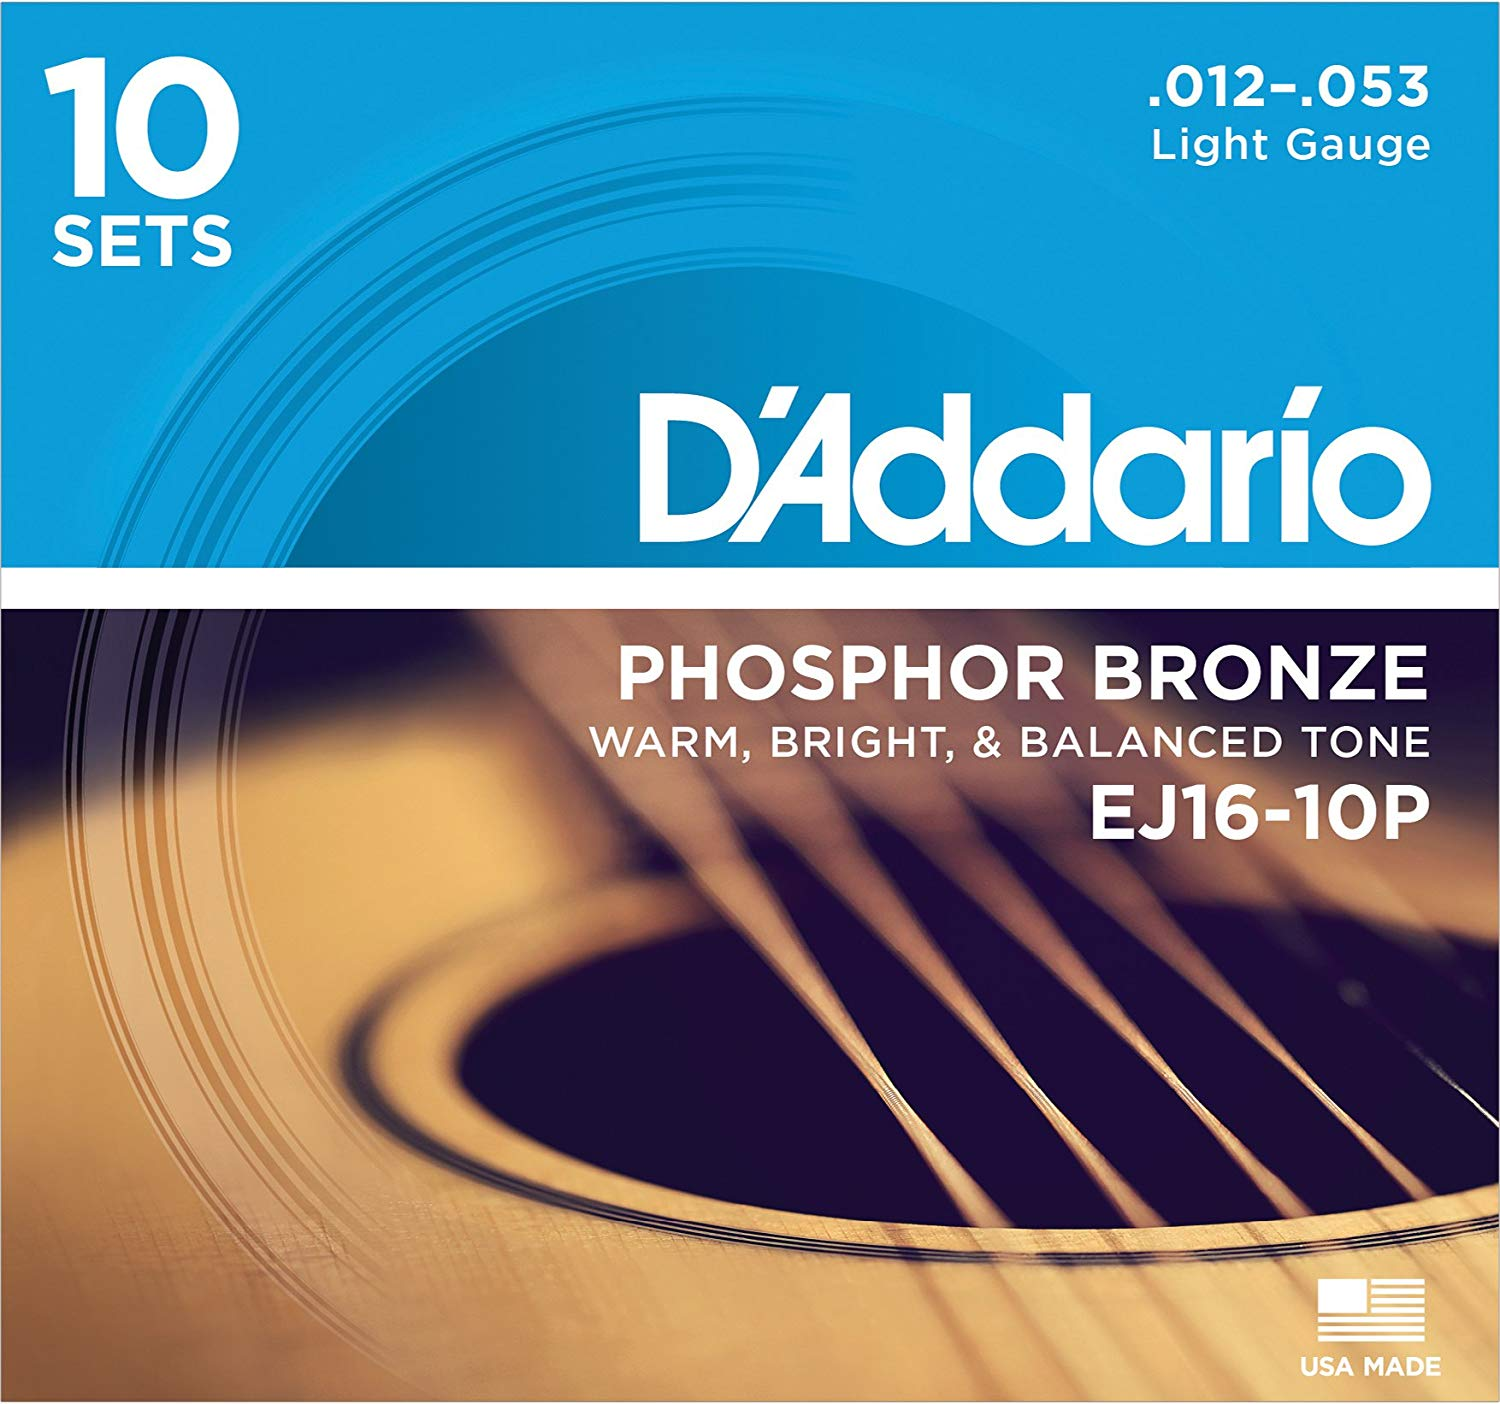 D'Addario EJ16 Phosphor Bronze Acoustic Guitar Strings, Light (10 Pack) – Corrosion-Resistant Phosphor Bronze, Offers a Warm, Bright and Well-Balanced Acoustic Tone and Comfortable Playability